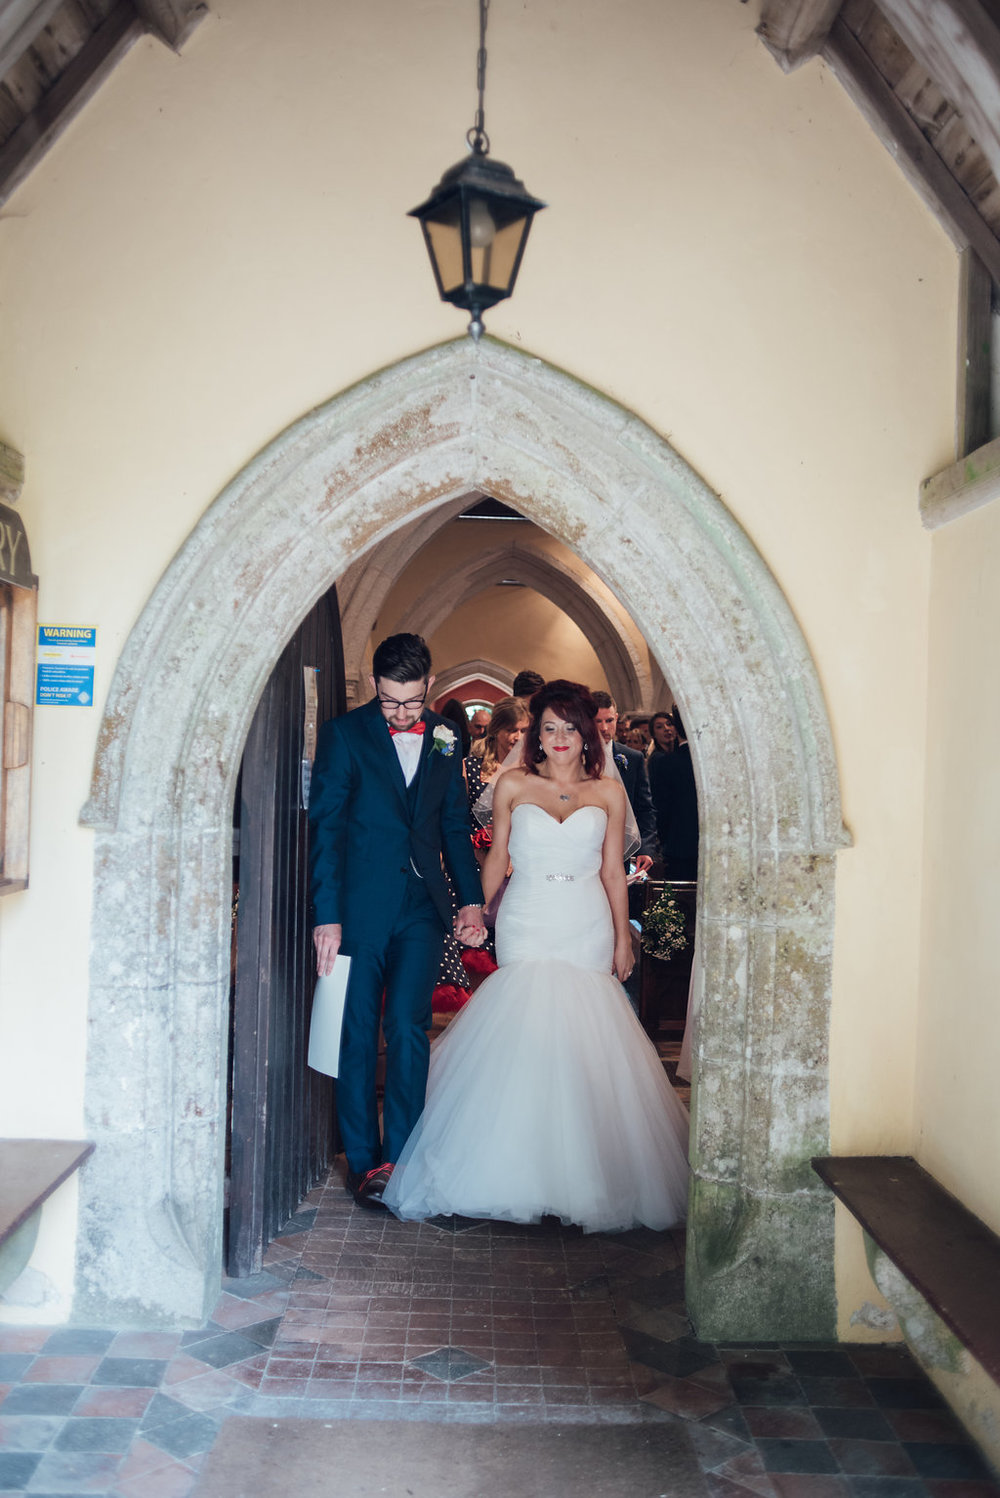 liberty-pearl-photography-cornwall-wedding-porthleven-wedding-red-and-blue-wedding-colour-palette-61